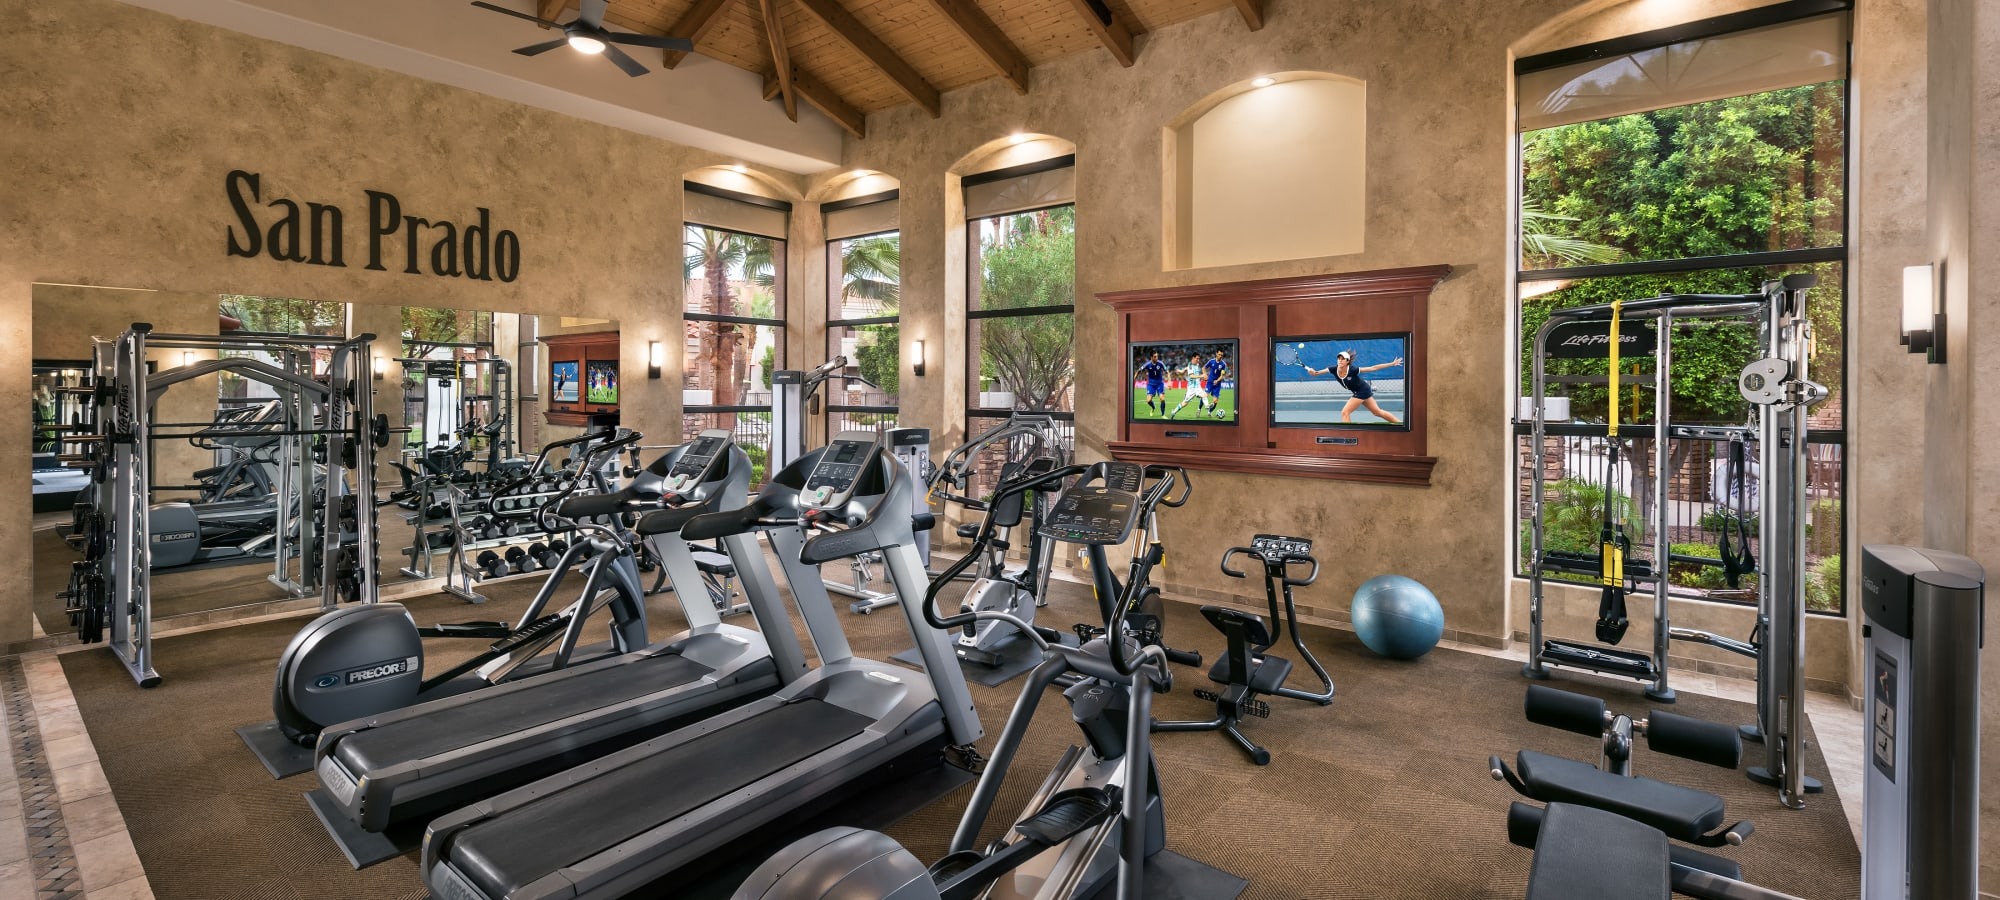 Luxury fitness center at San Prado in Glendale, Arizona